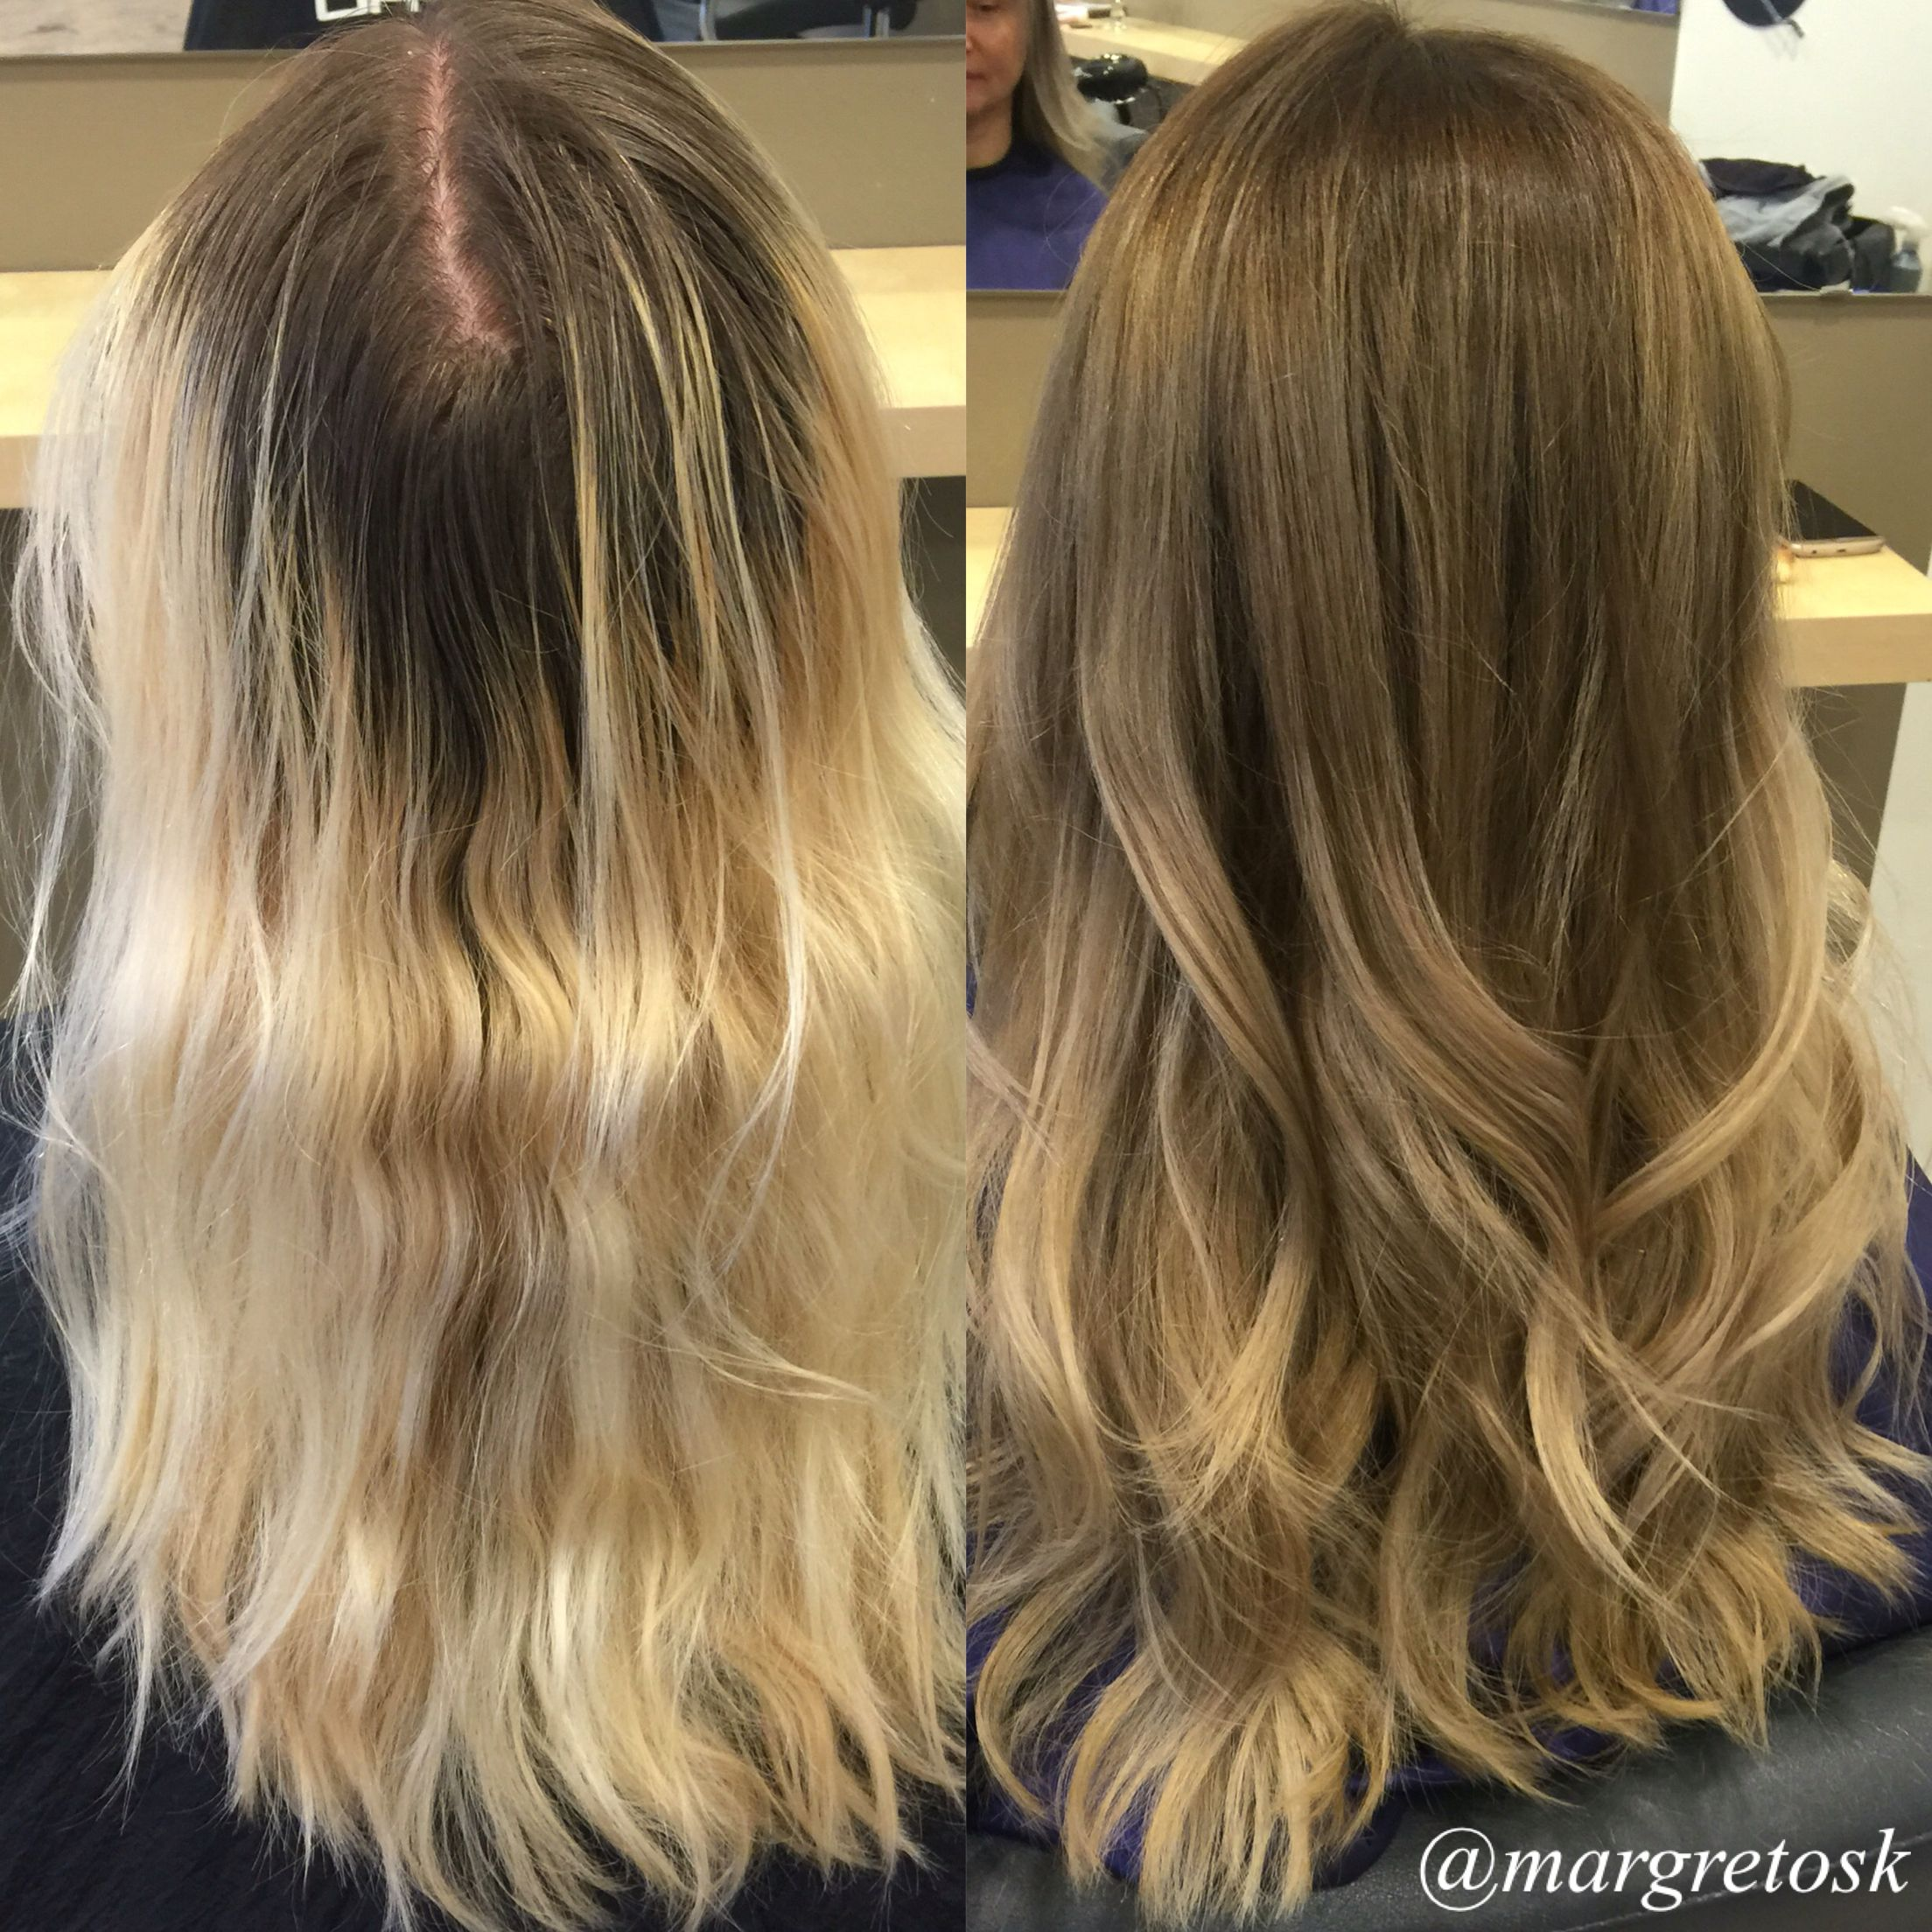 Before And After Coloring From Really Blonde Ends With Really Dark Grown Out Roots To A Light Brown Dark Blonde Col Roots Hair Balayage Hair Dark Blonde Hair